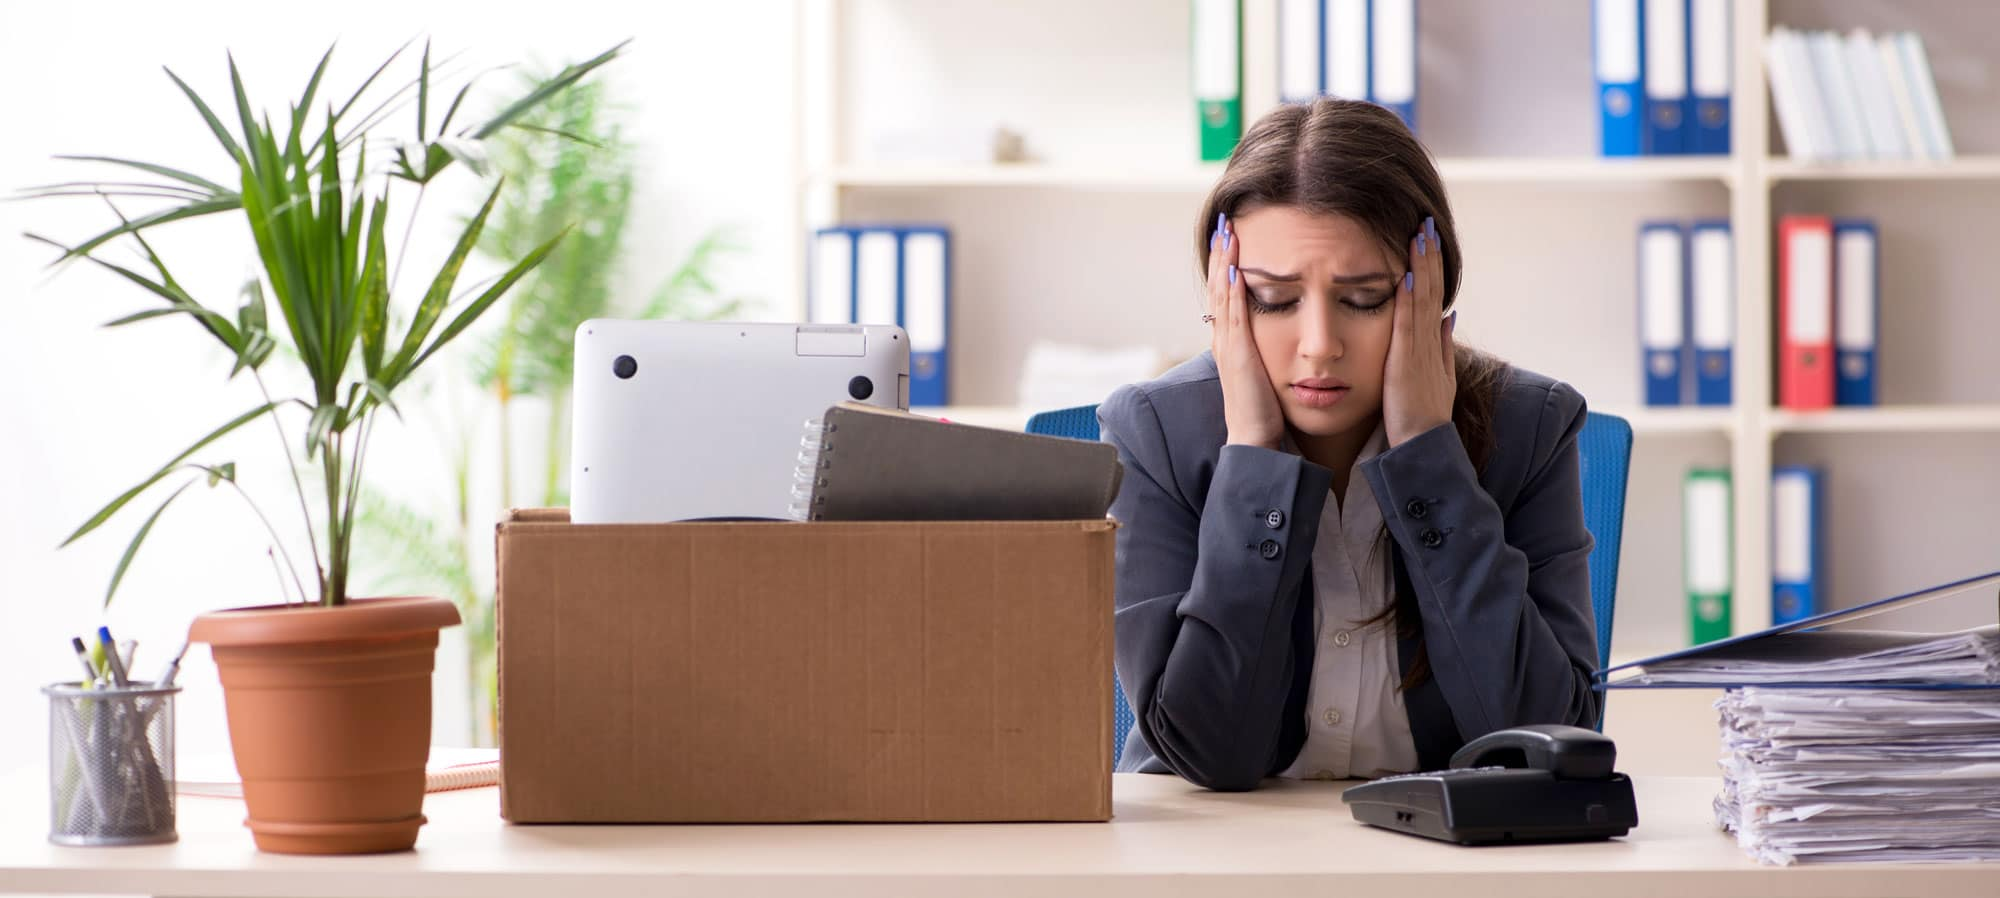 Employee Relocation Pitfalls: What Employers Should Avoid